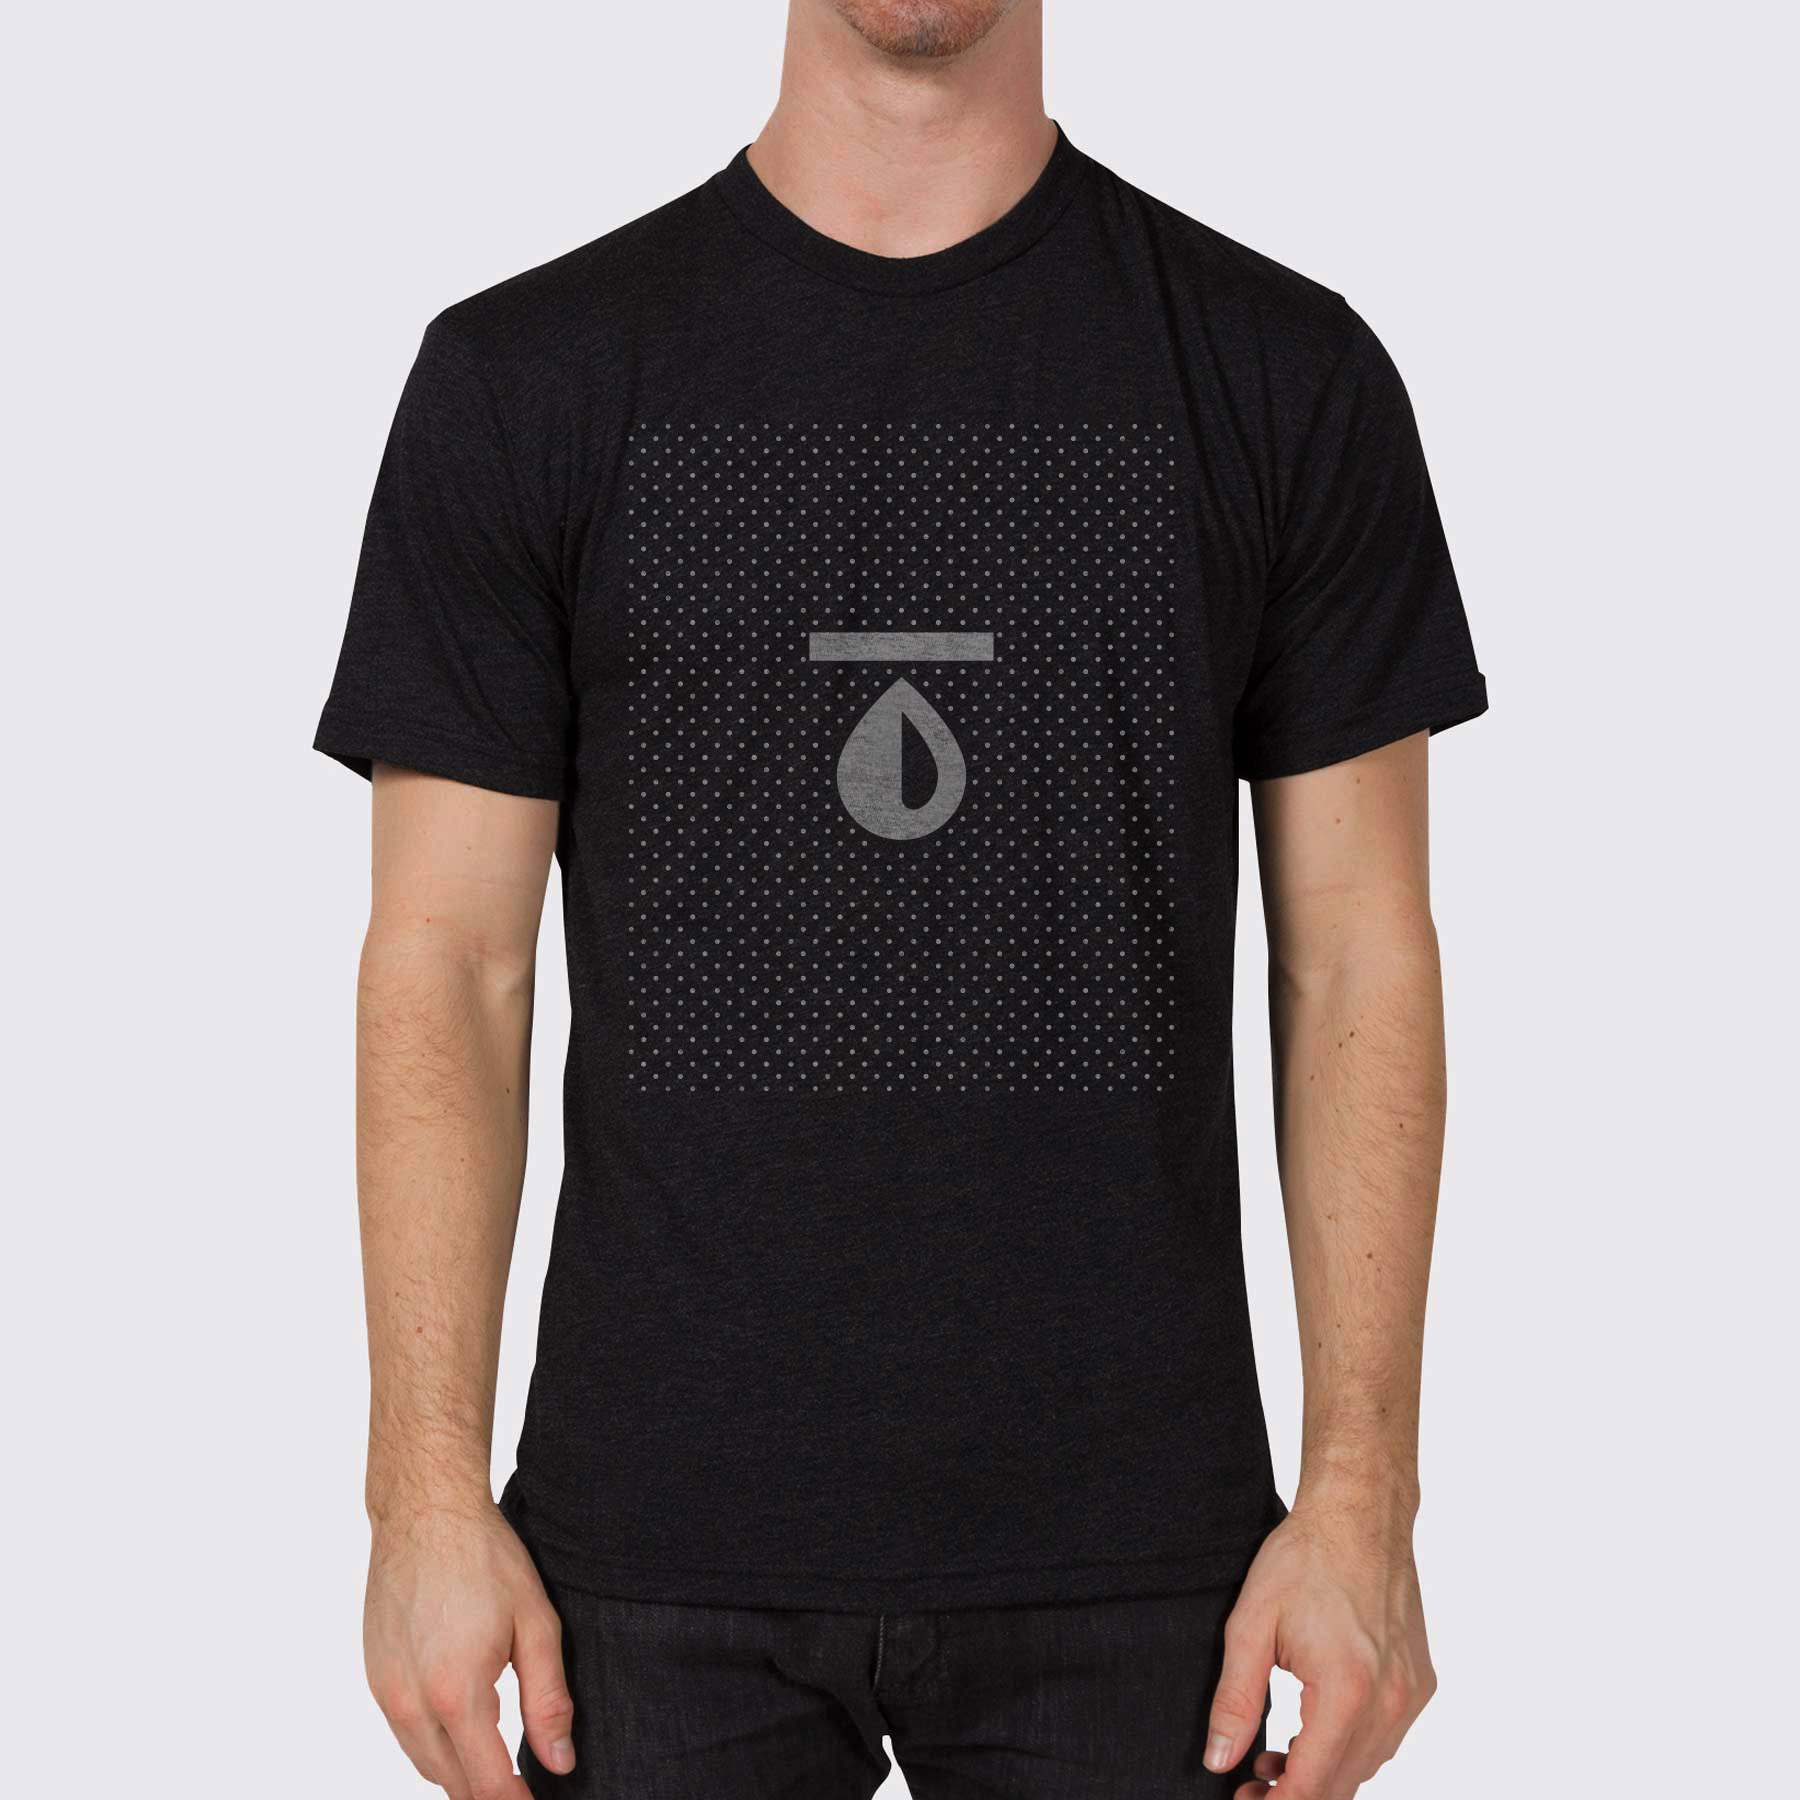 Black t shirt online design - Black T Shirt Online Design 49